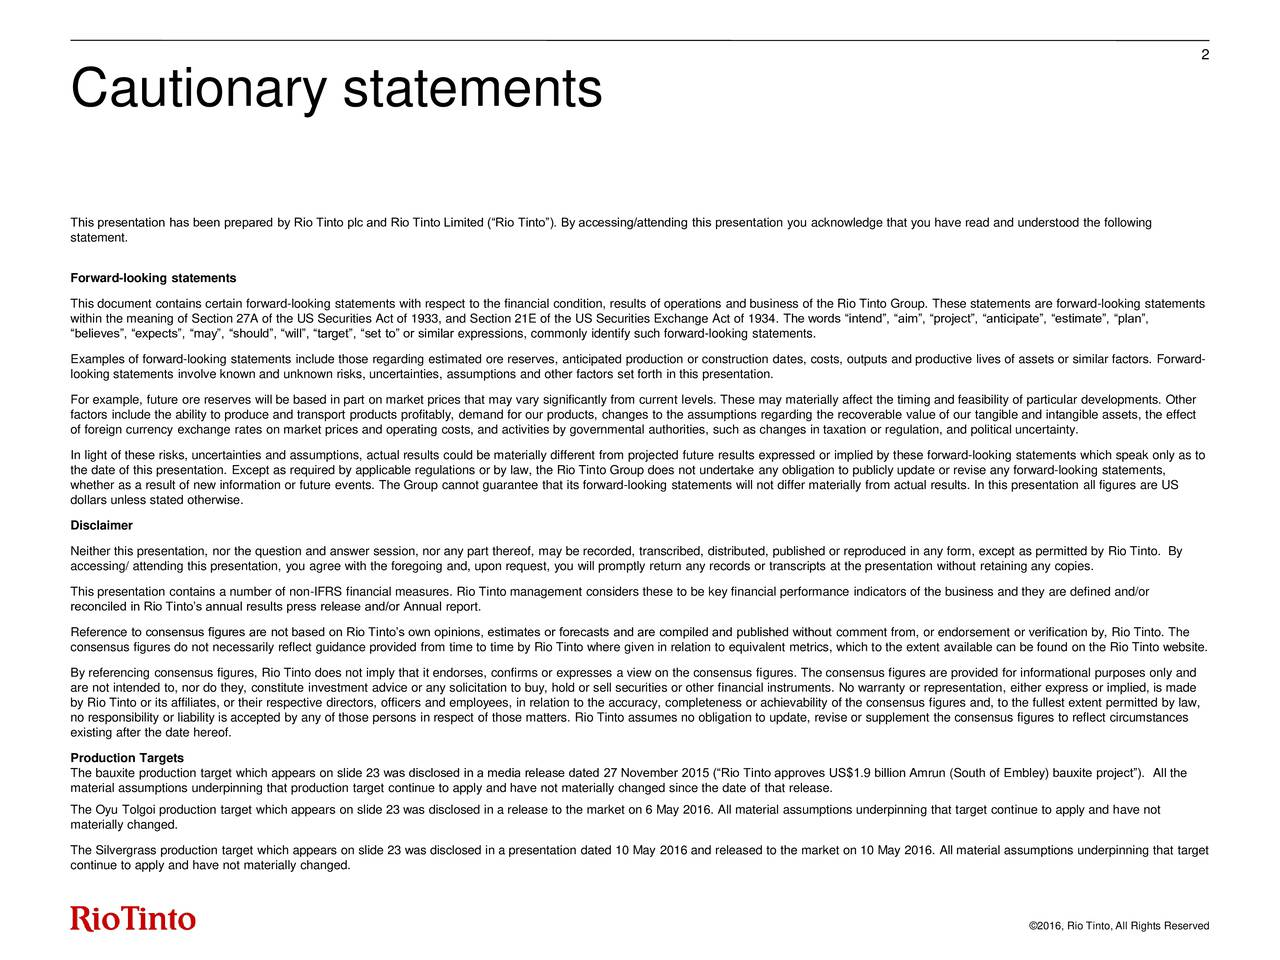 Cautionary statements This presentation has been prepared by Rio Tinto plc and Rio Tinto Limited (Rio Tinto). By accessing/attending this presentation you acknowledge that you have read and understood the following statement. Forward-looking statements This document contains certain forward-looking statements with respect to the financial condition, results of operations and business of the Rio Tinto Group. These statements are forward-looking statements within the meaning of Section 27A of the US Securities Act of 1933, and Section 21E of the US Securities Exchange Act of 1934. The words intend, aim, project, anticipate, estimate, plan, believes, expects, may, should, will, target, set to or similar expressions, commonly identify such forward-looking statements. Examples of forward-looking statements include those regarding estimated ore reserves, anticipated production or construction dates, costs, outputs and productive lives of assets or similar factors. Forward- looking statements involve known and unknown risks, uncertainties, assumptions and other factors set forth in this presentation. For example, future ore reserves will be based in part on market prices that may vary significantly from current levels. These may materially affect the timing and feasibility of particular developments. Other factors include the ability to produce and transport products profitably, demand for our products, changes to the assumptions regarding the recoverable value of our tangible and intangible assets, the effect of foreign currency exchange rates on market prices and operating costs, and activities by governmental authorities, such as changes in taxation or regulation, and political uncertainty. In light of these risks, uncertainties and assumptions, actual results could be materially different from projected future results expressed or implied by these forward-looking statements which speak only as to the date of this presentation. Except as required by applicable regulatio